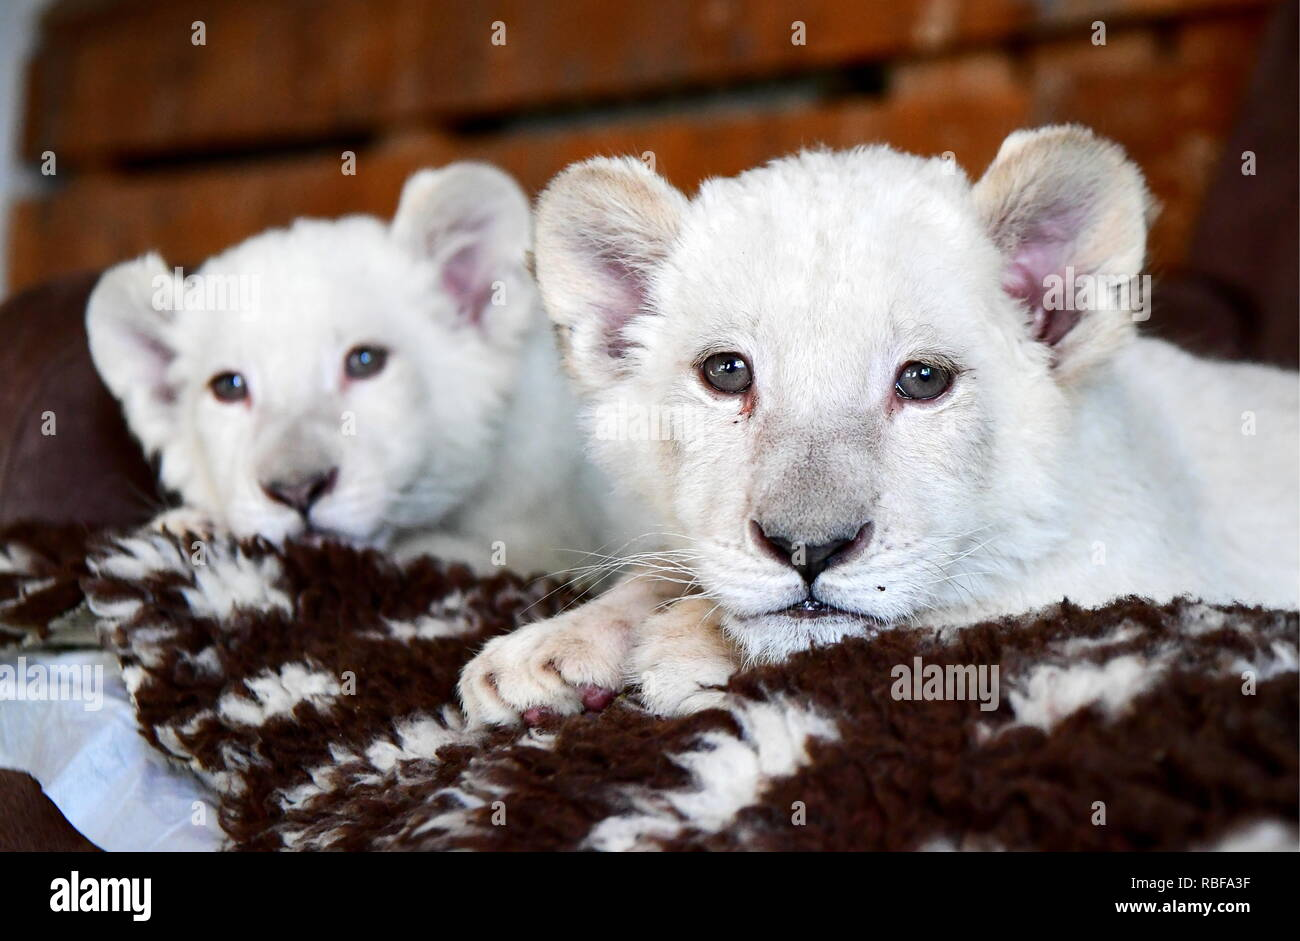 Vladivostok, Russia. 10th Jan, 2019. VLADIVOSTOK, RUSSIA - JANUARY 10, 2019: The two white lionesses, two months old, have been delivered from Belarus to the Sadgorod zoo in Vladivostok; there are only 300 white lions in the world, of which 200 live in the Sanbona Wildlife Reserve in South Africa. Yuri Smityuk/TASS Credit: ITAR-TASS News Agency/Alamy Live News - Stock Image